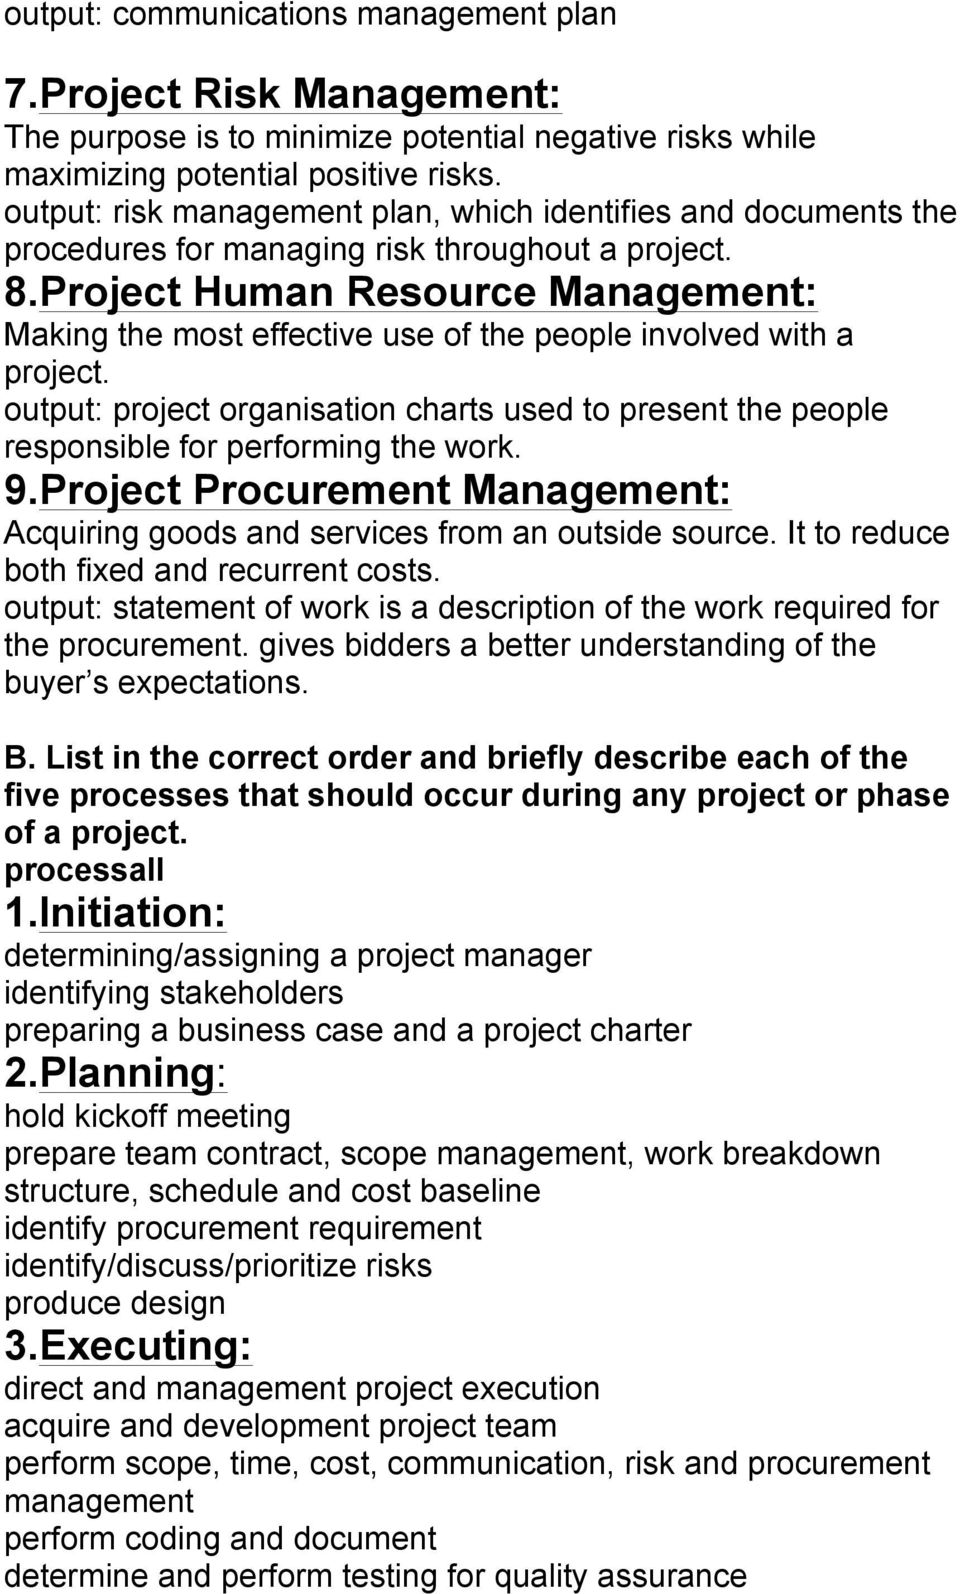 Project Human Resource Management: Making the most effective use of the people involved with a project.